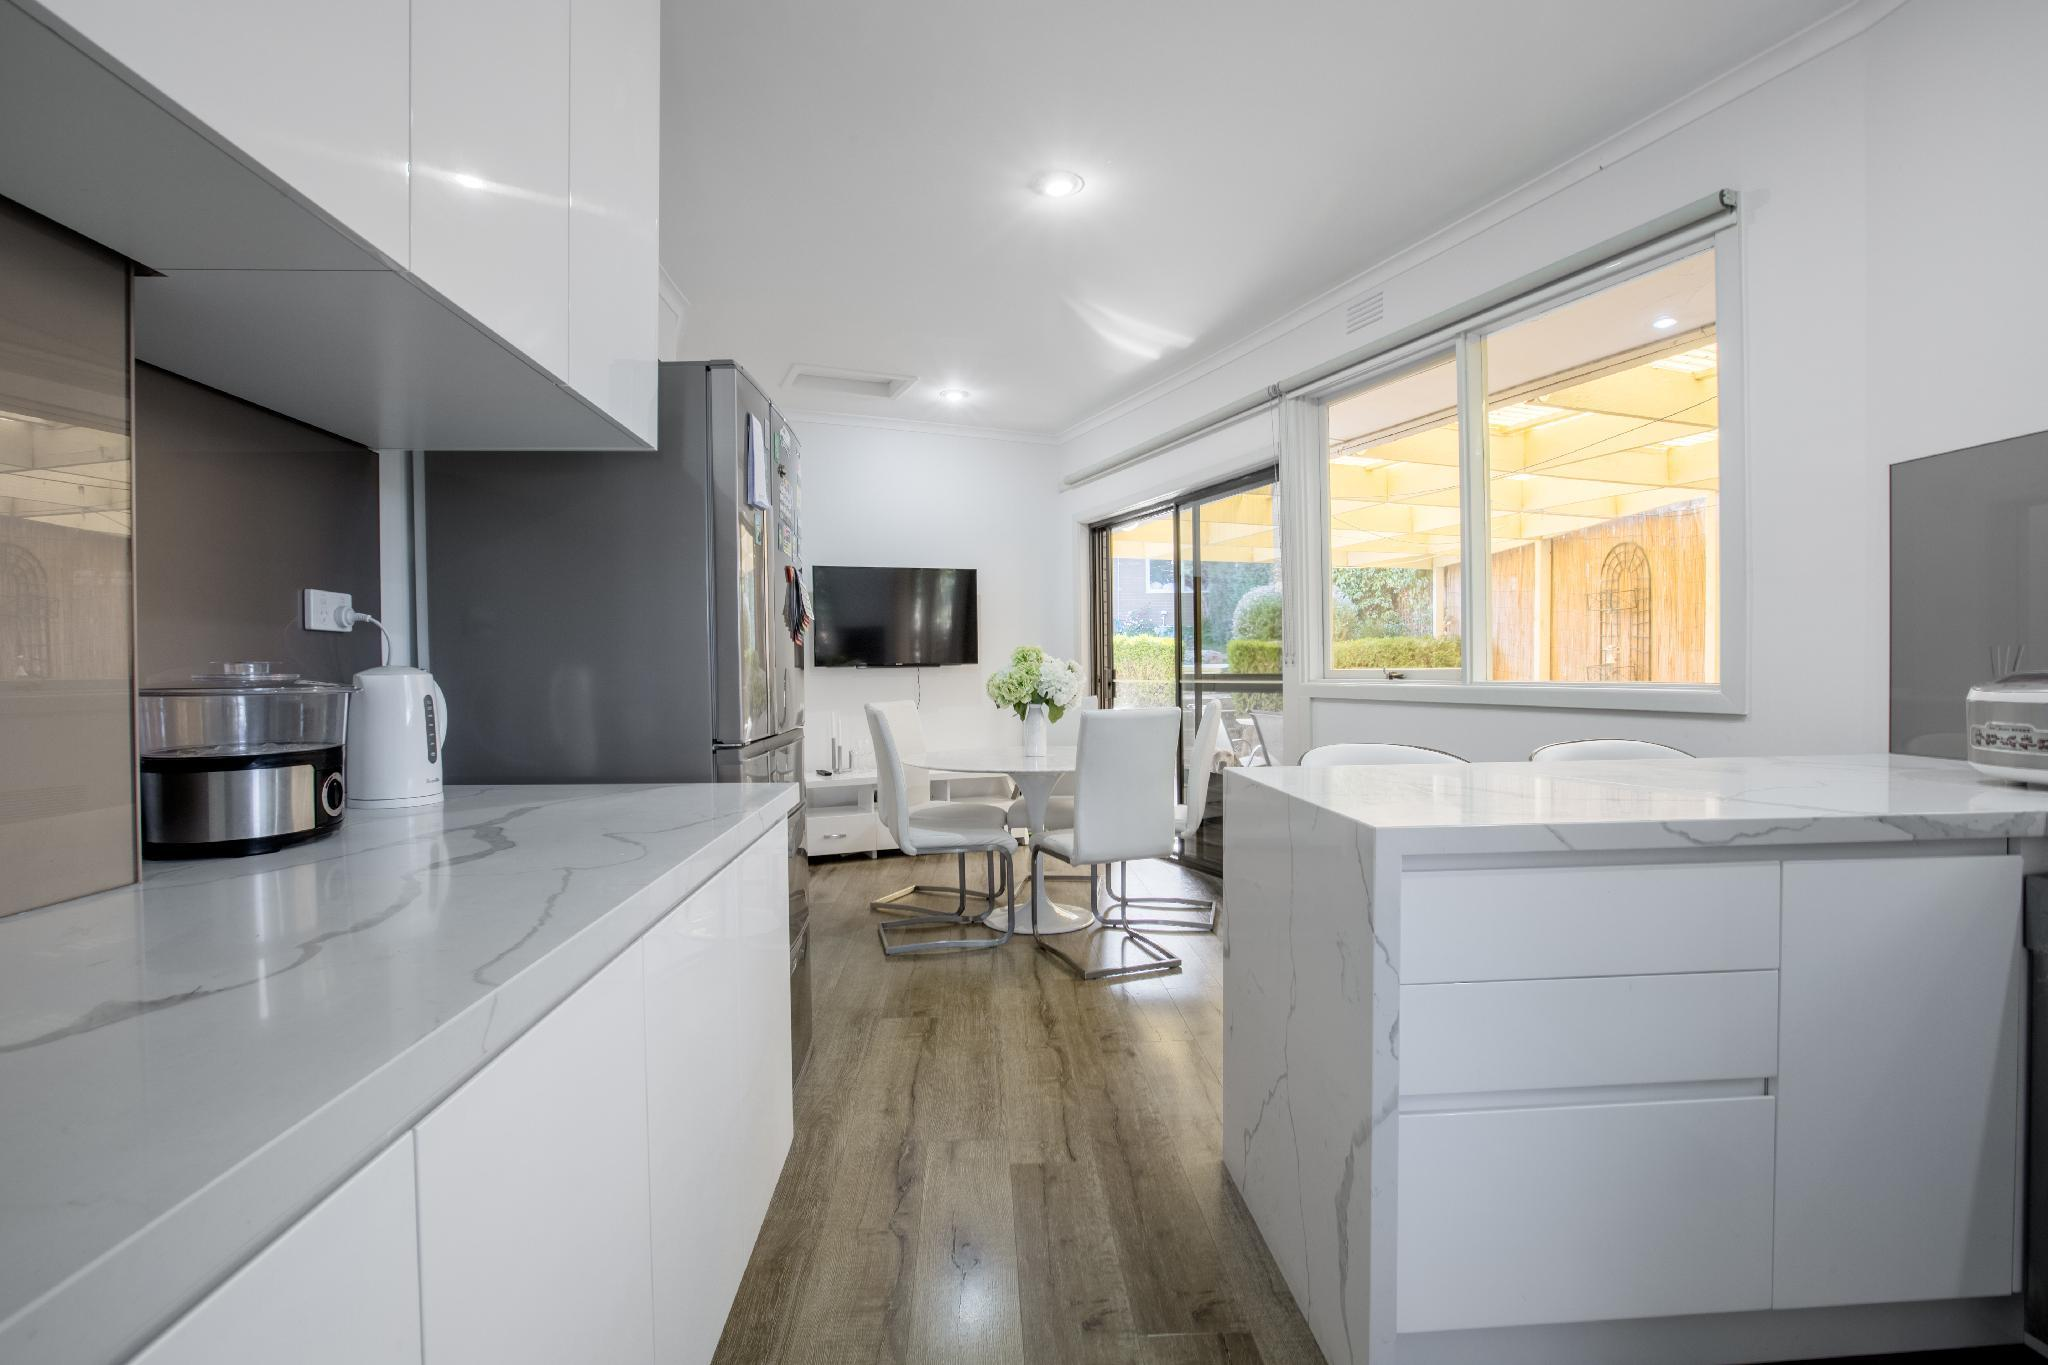 Real Luxury 4 Bedrooms House In Doncaster